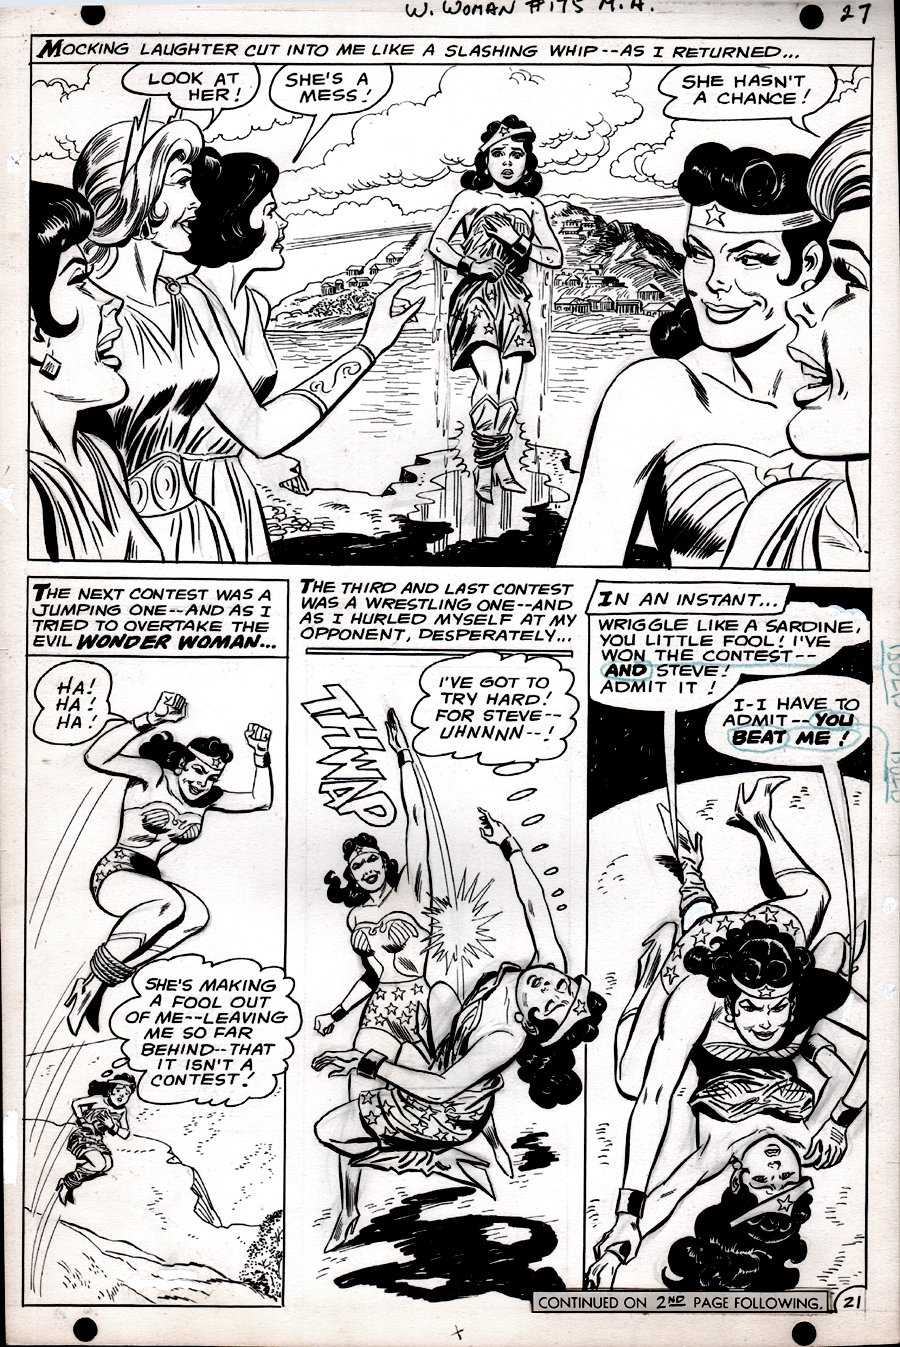 Wonder Woman #175 p 21 (SILVER AGE, WONDER WOMAN BATTLES WONDER WOMAN!) 1967